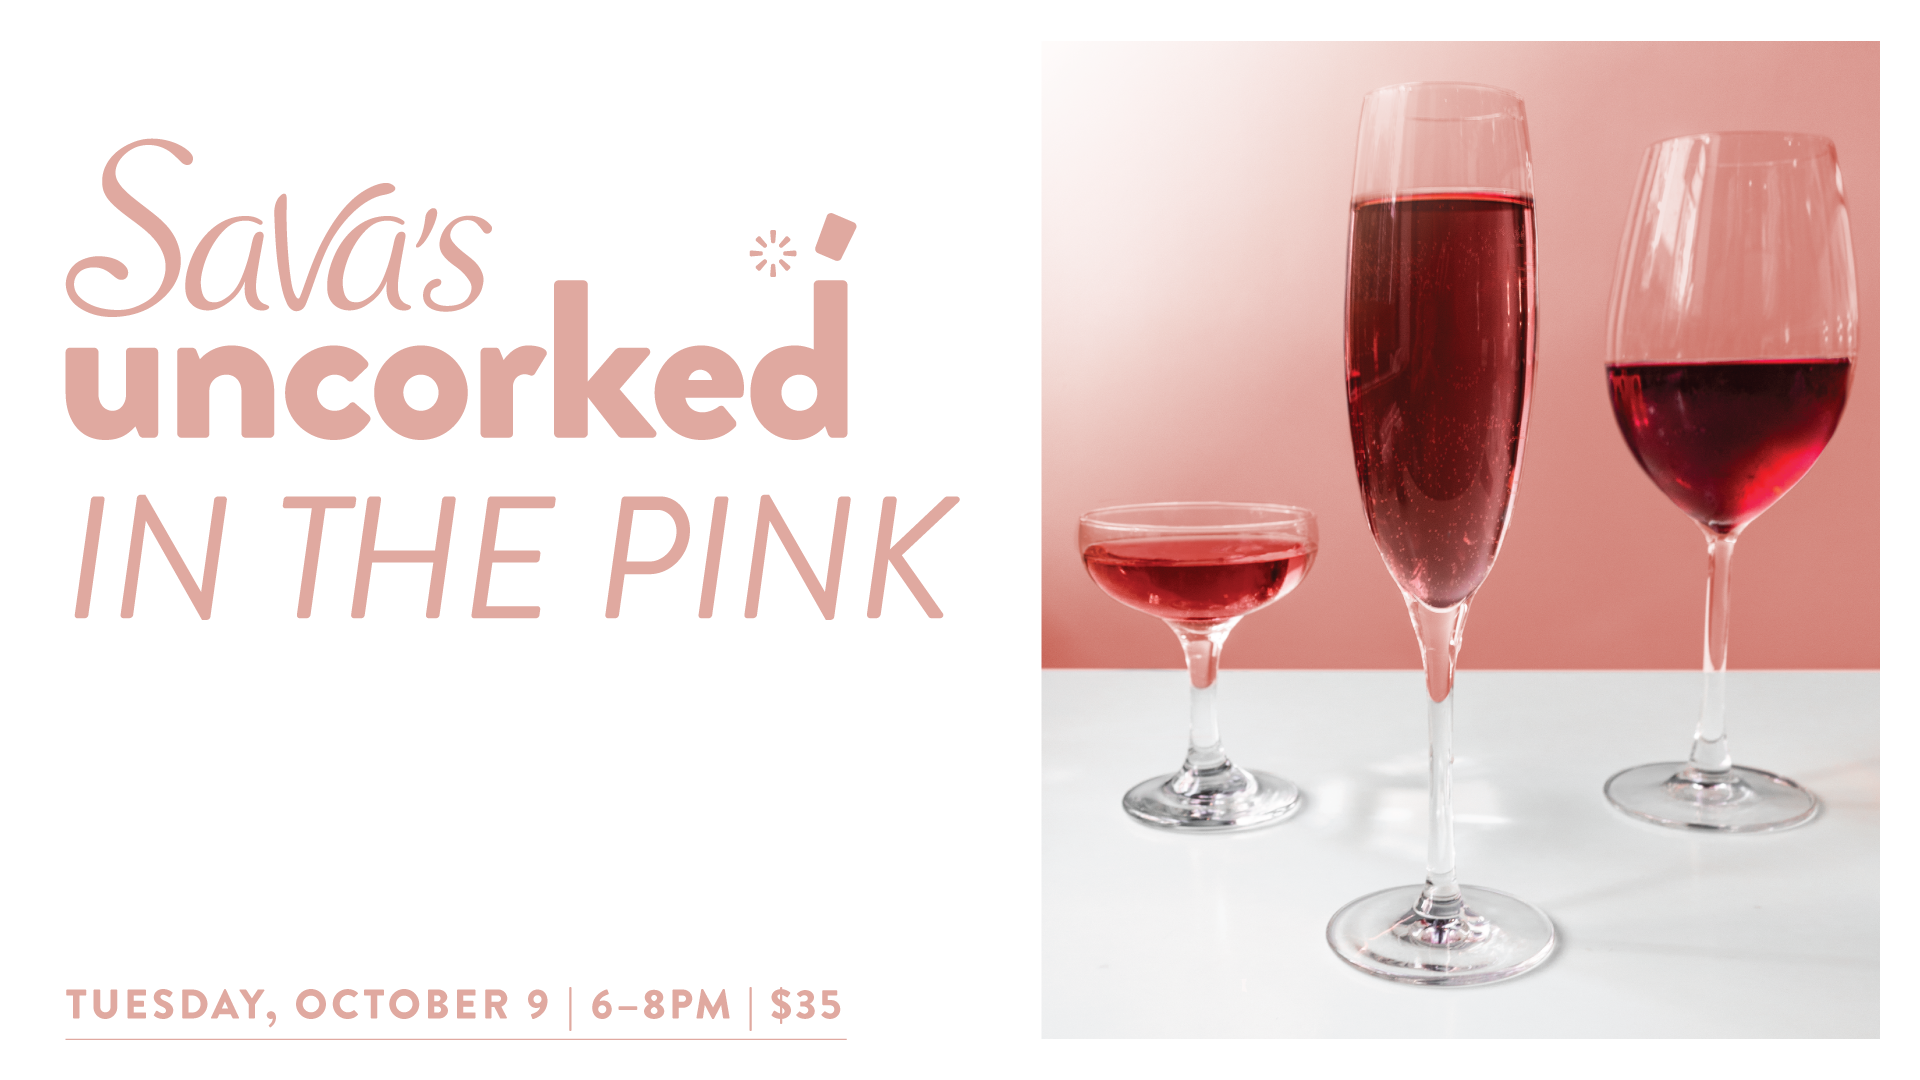 Savas_Uncorked_FaceBook_inThePink_091818TH.png